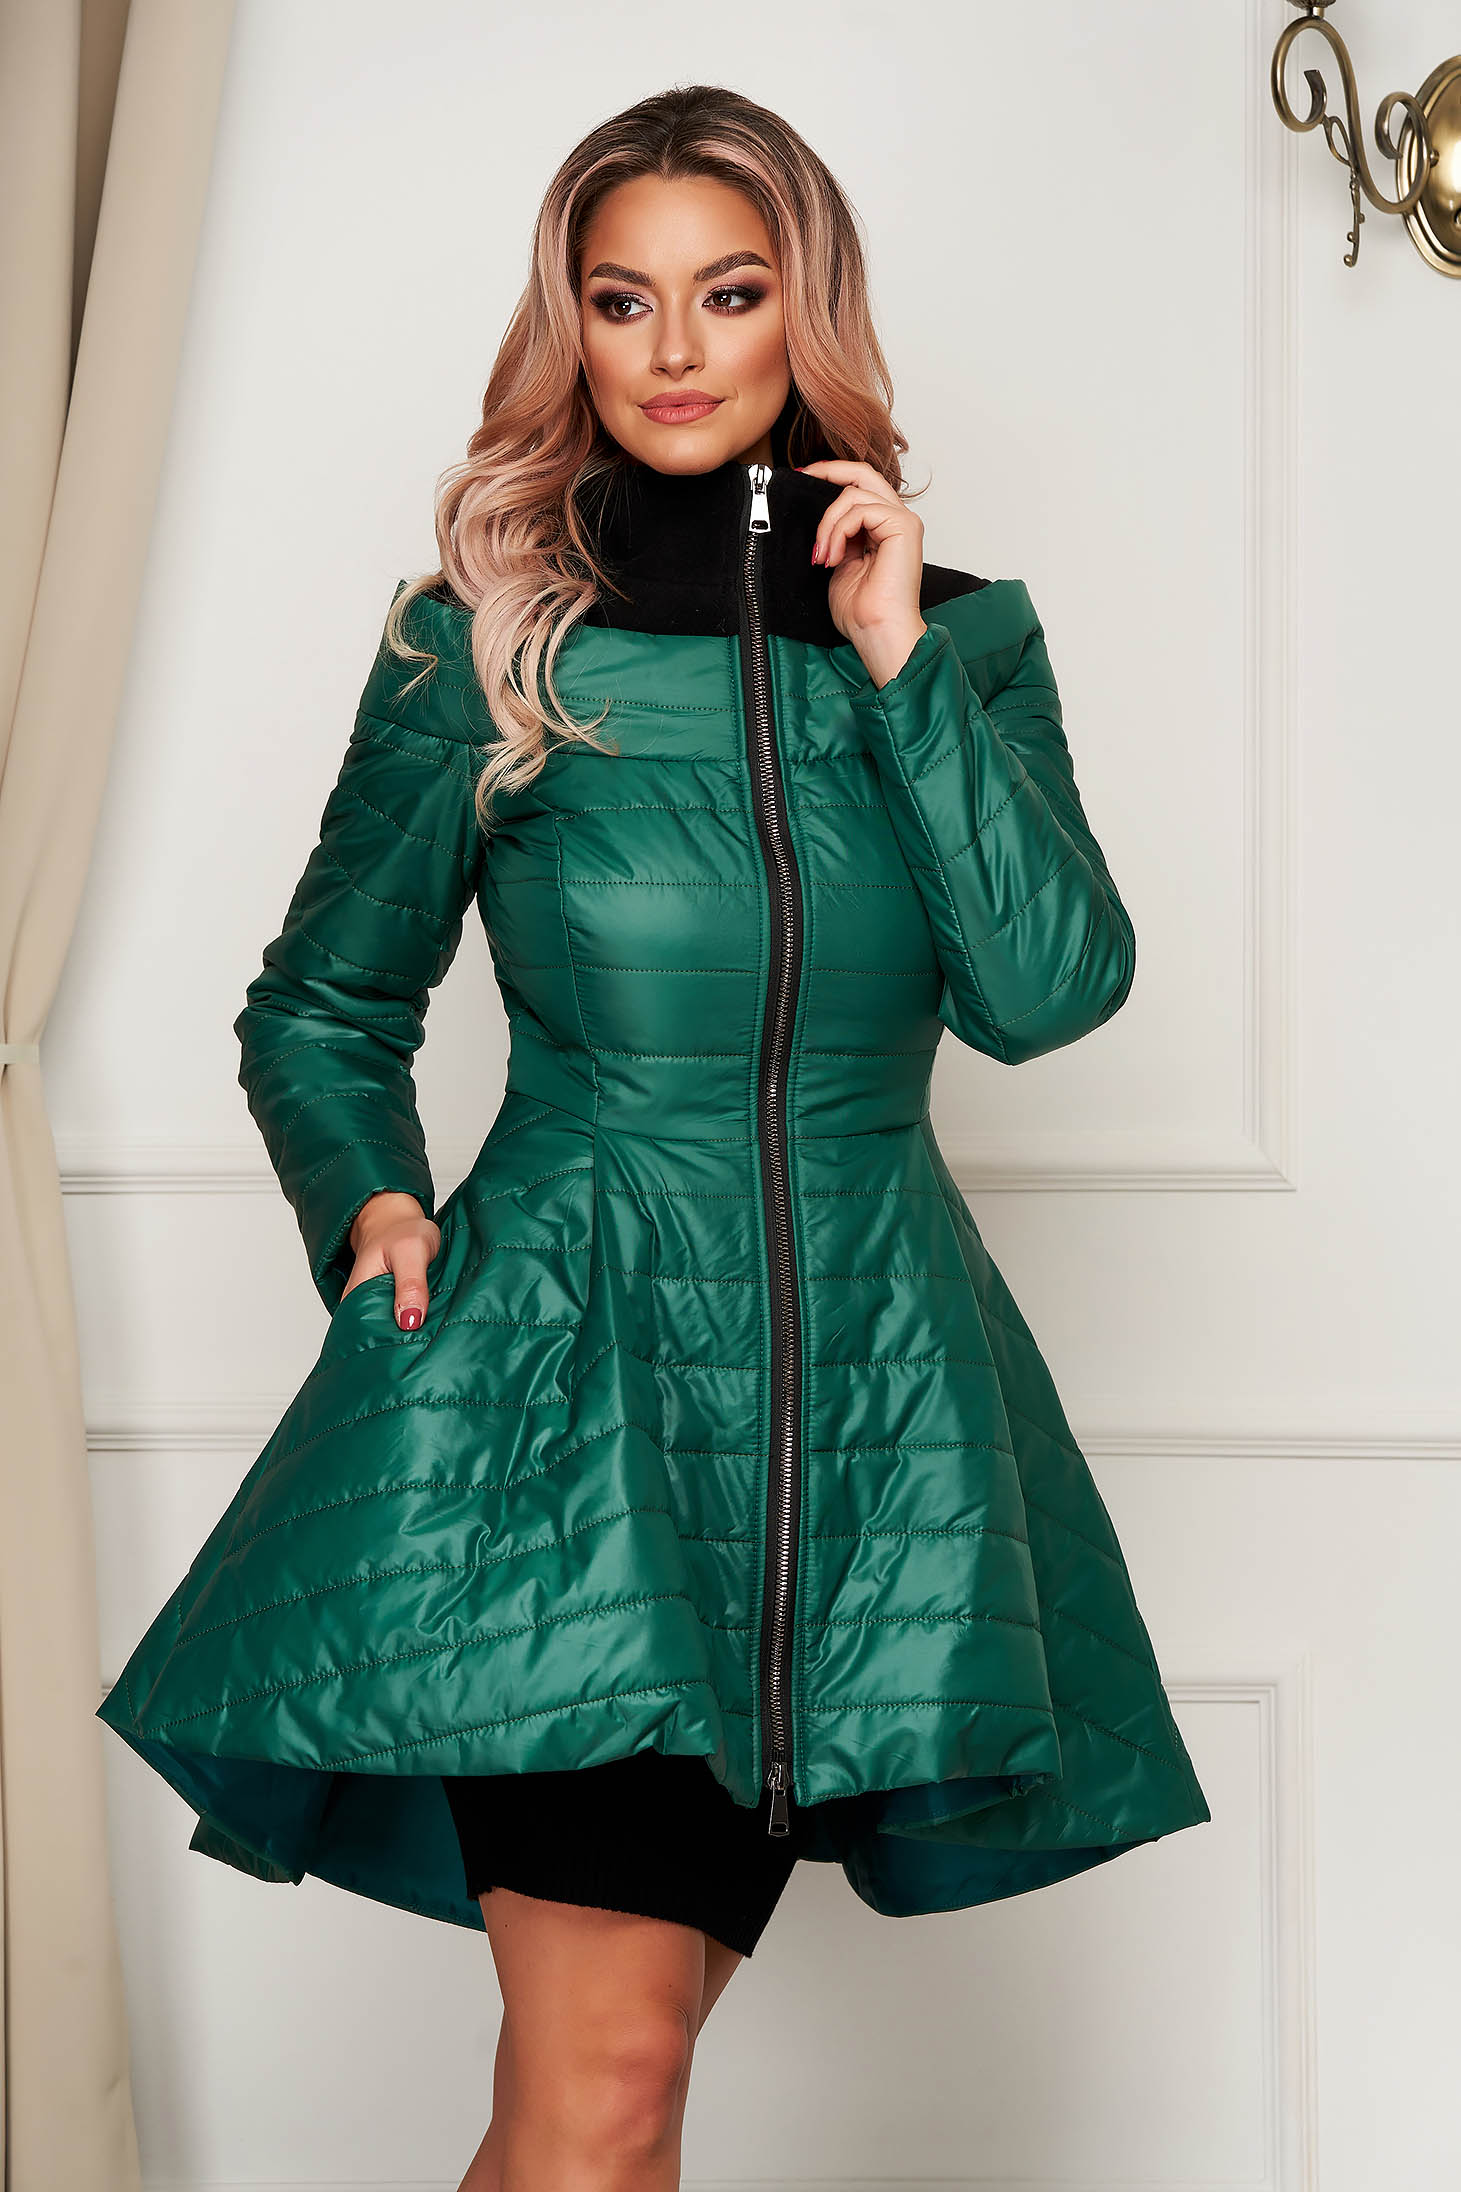 Green from slicker jacket asymmetrical casual with inside lining